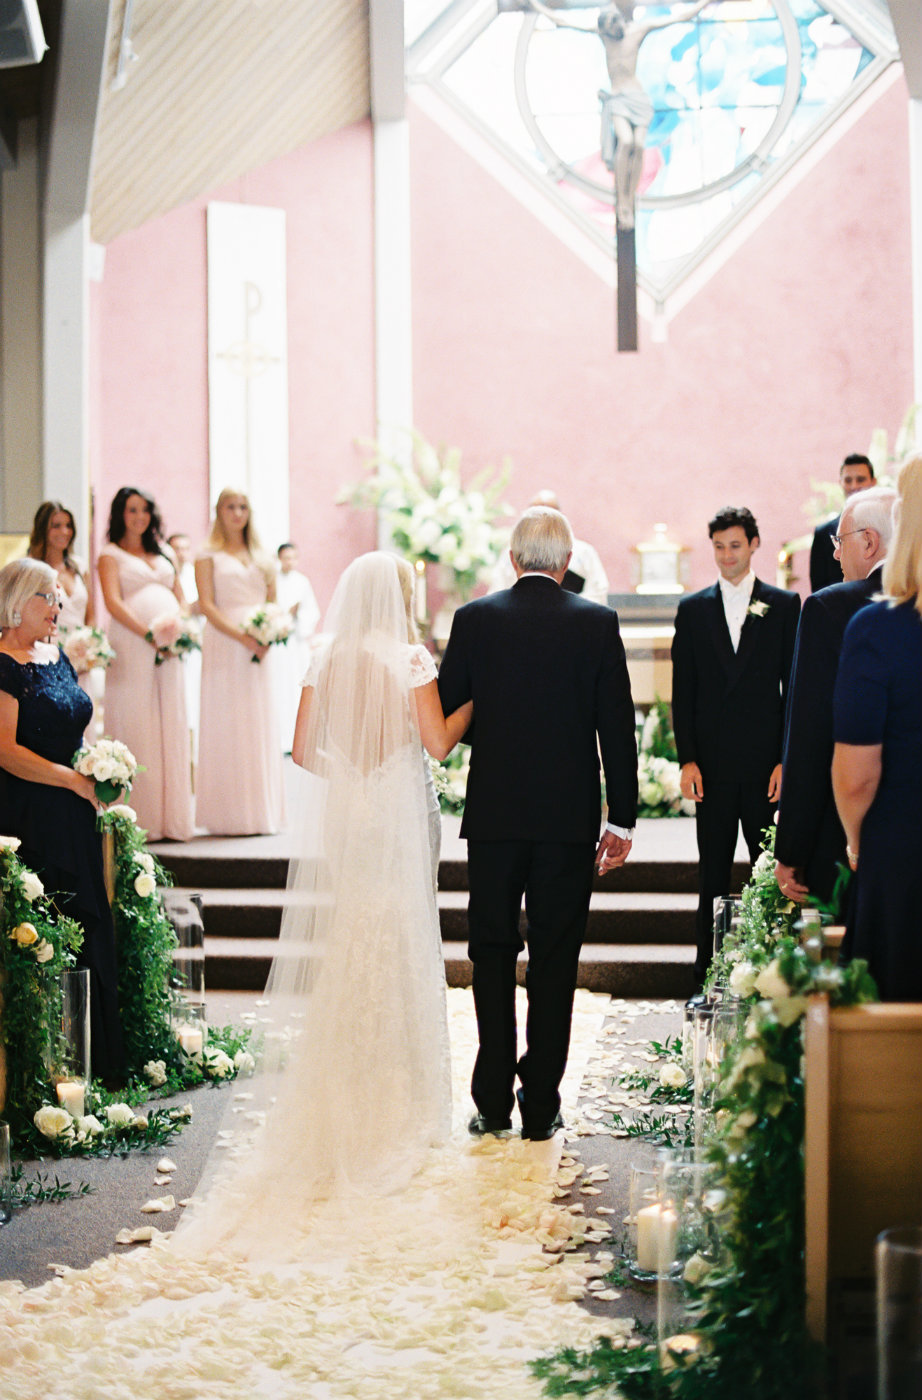 Luxury Church wedding ceremony with white rose petal aisle runner.